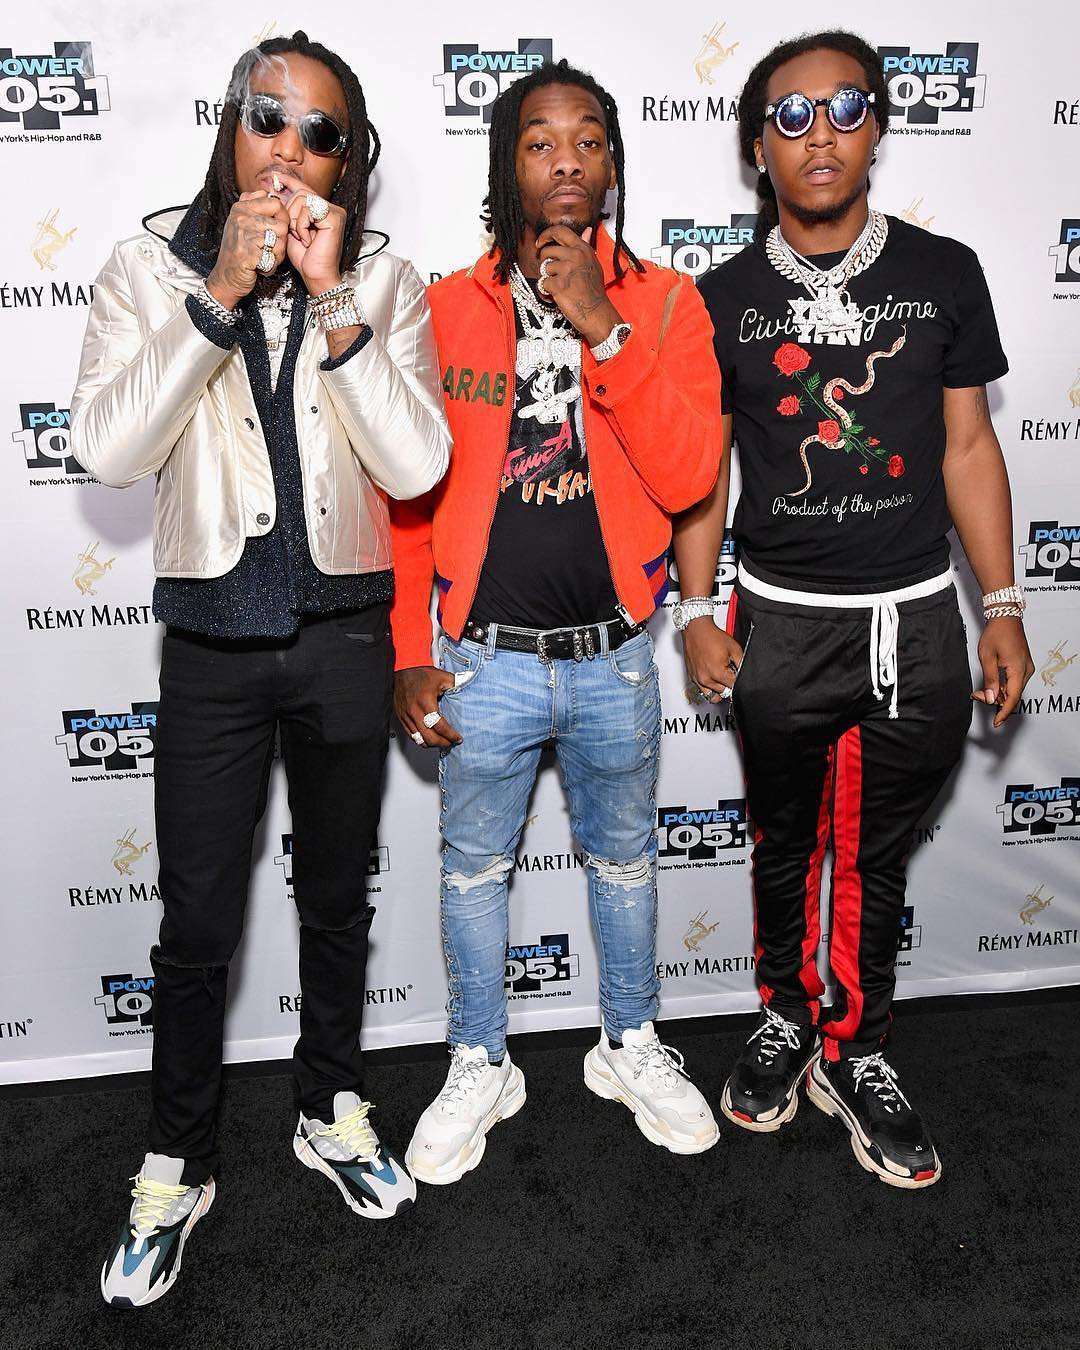 SPOTTED: The Migos Gang in Gucci, Yeezys, Balenciaga and More